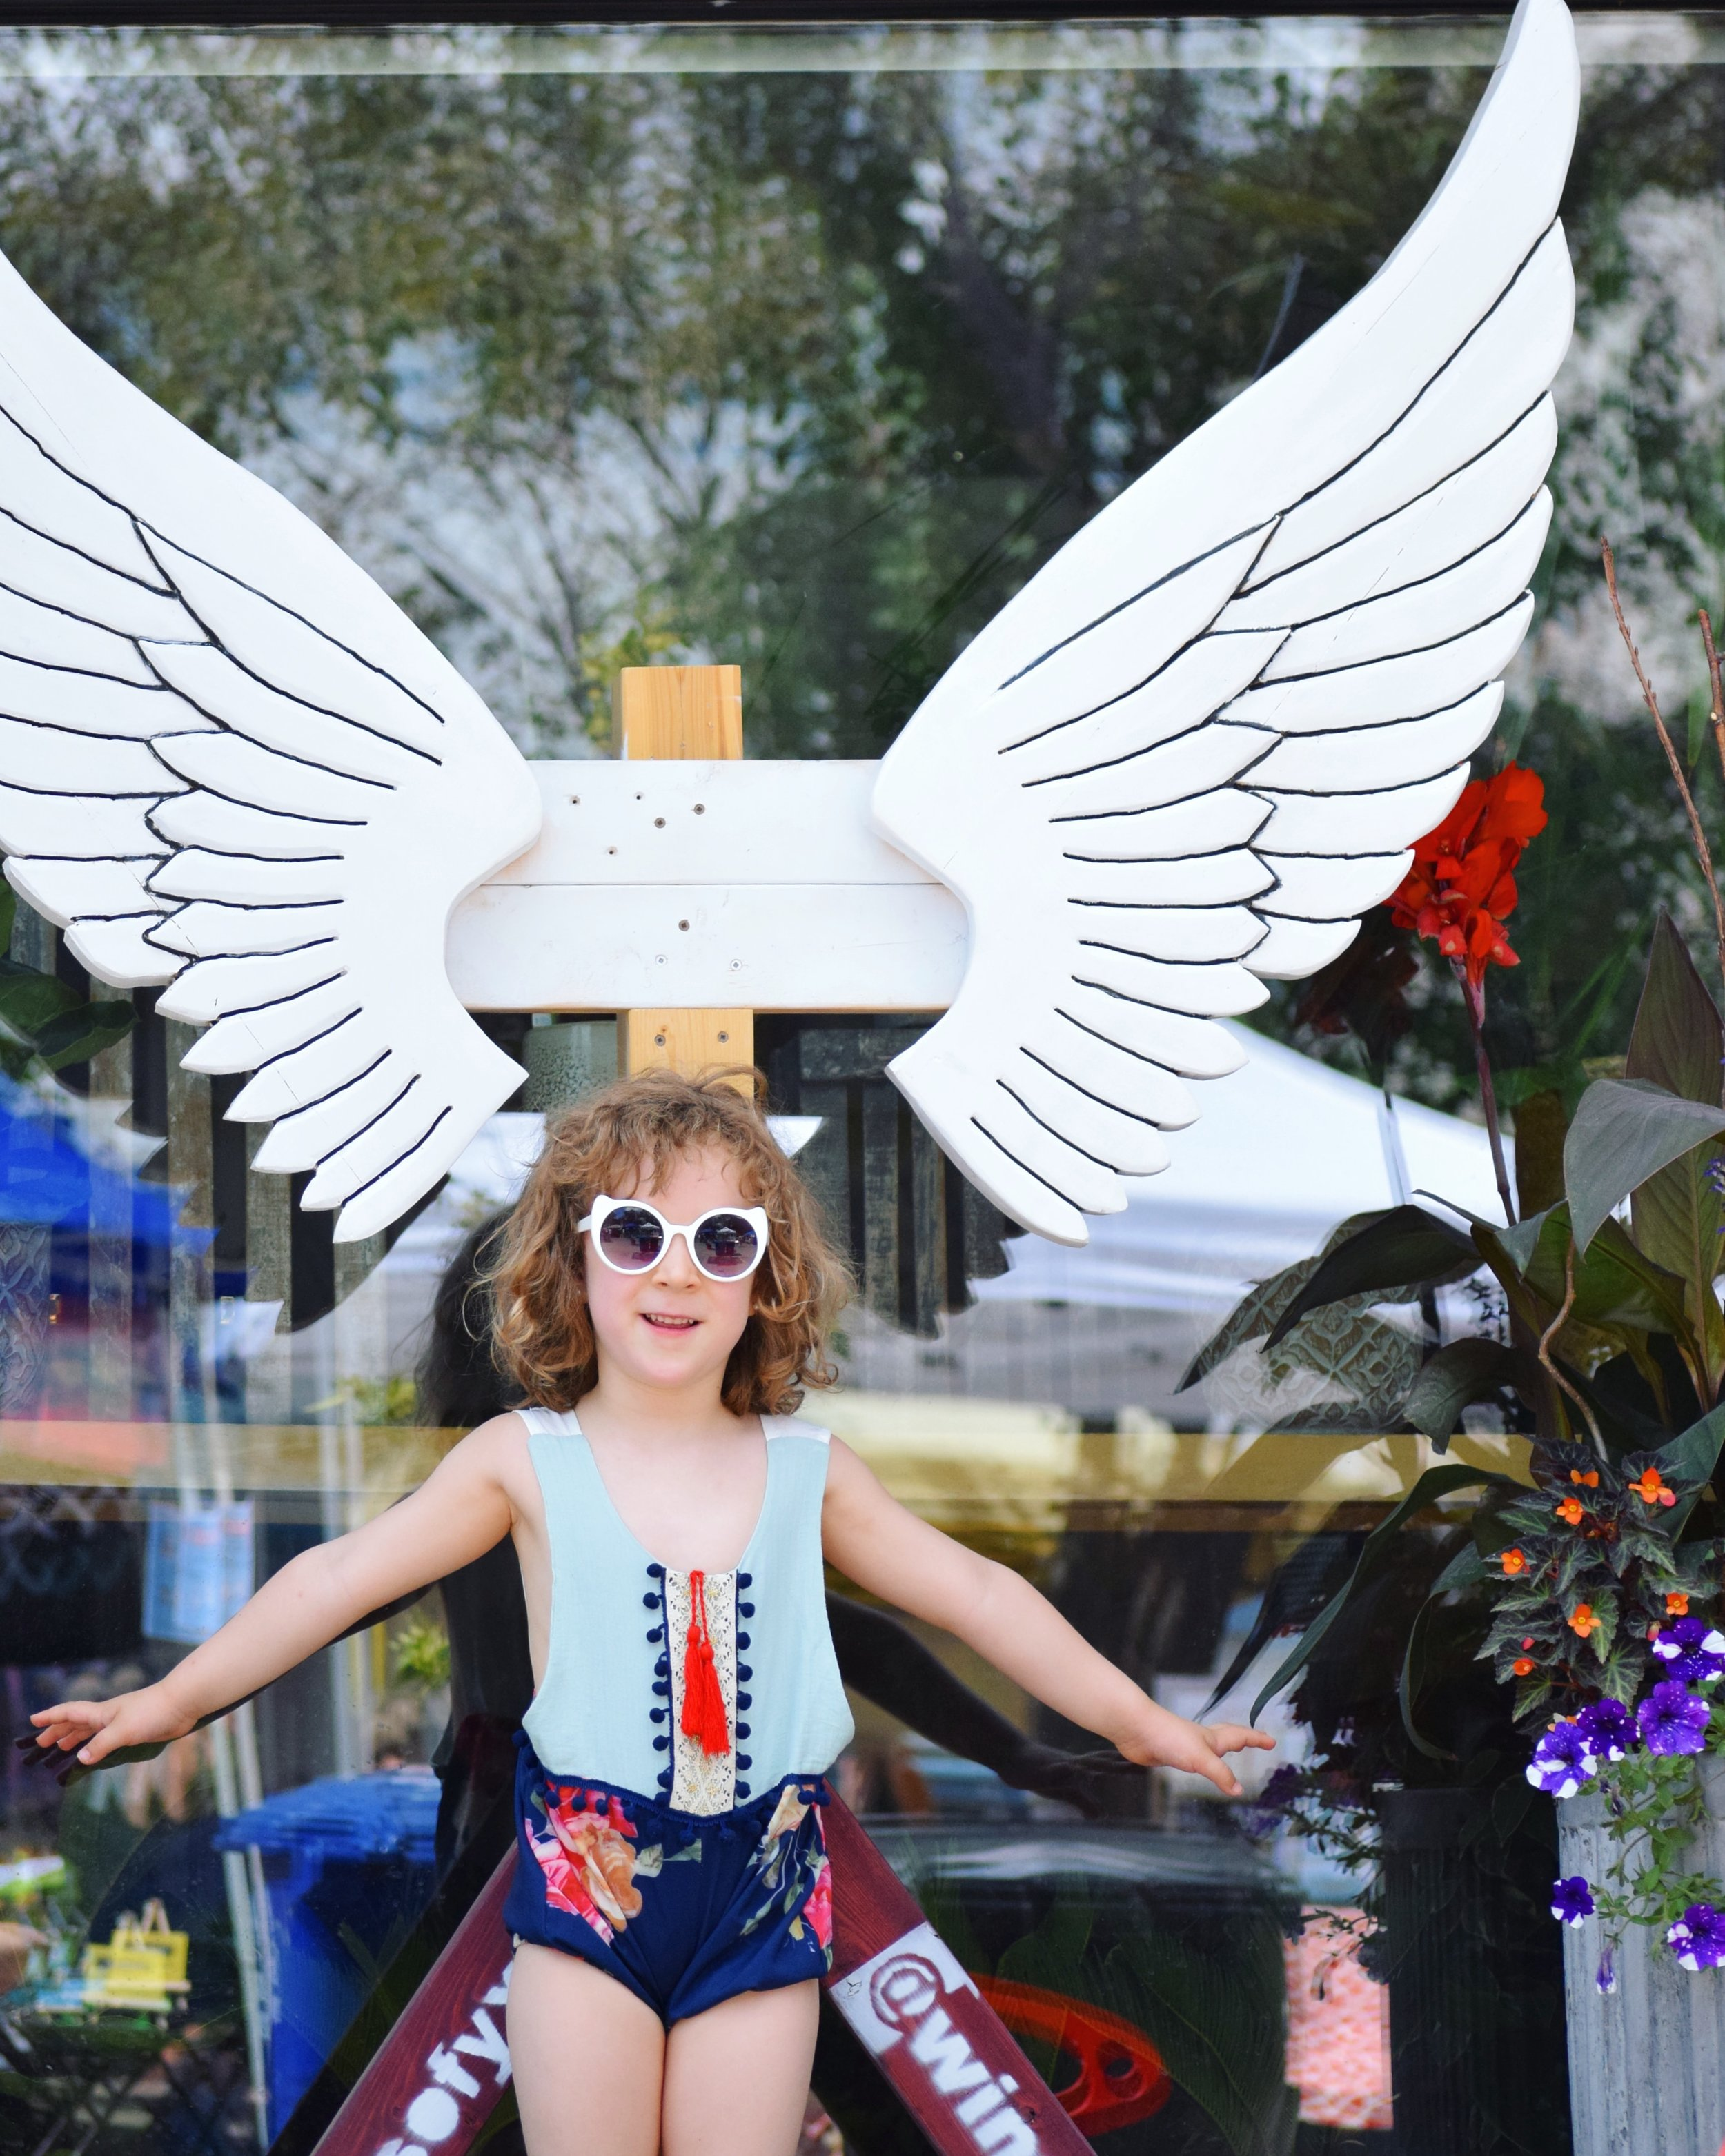 My daughter poses with a set of wings during the Fringe Festival on Broadway.